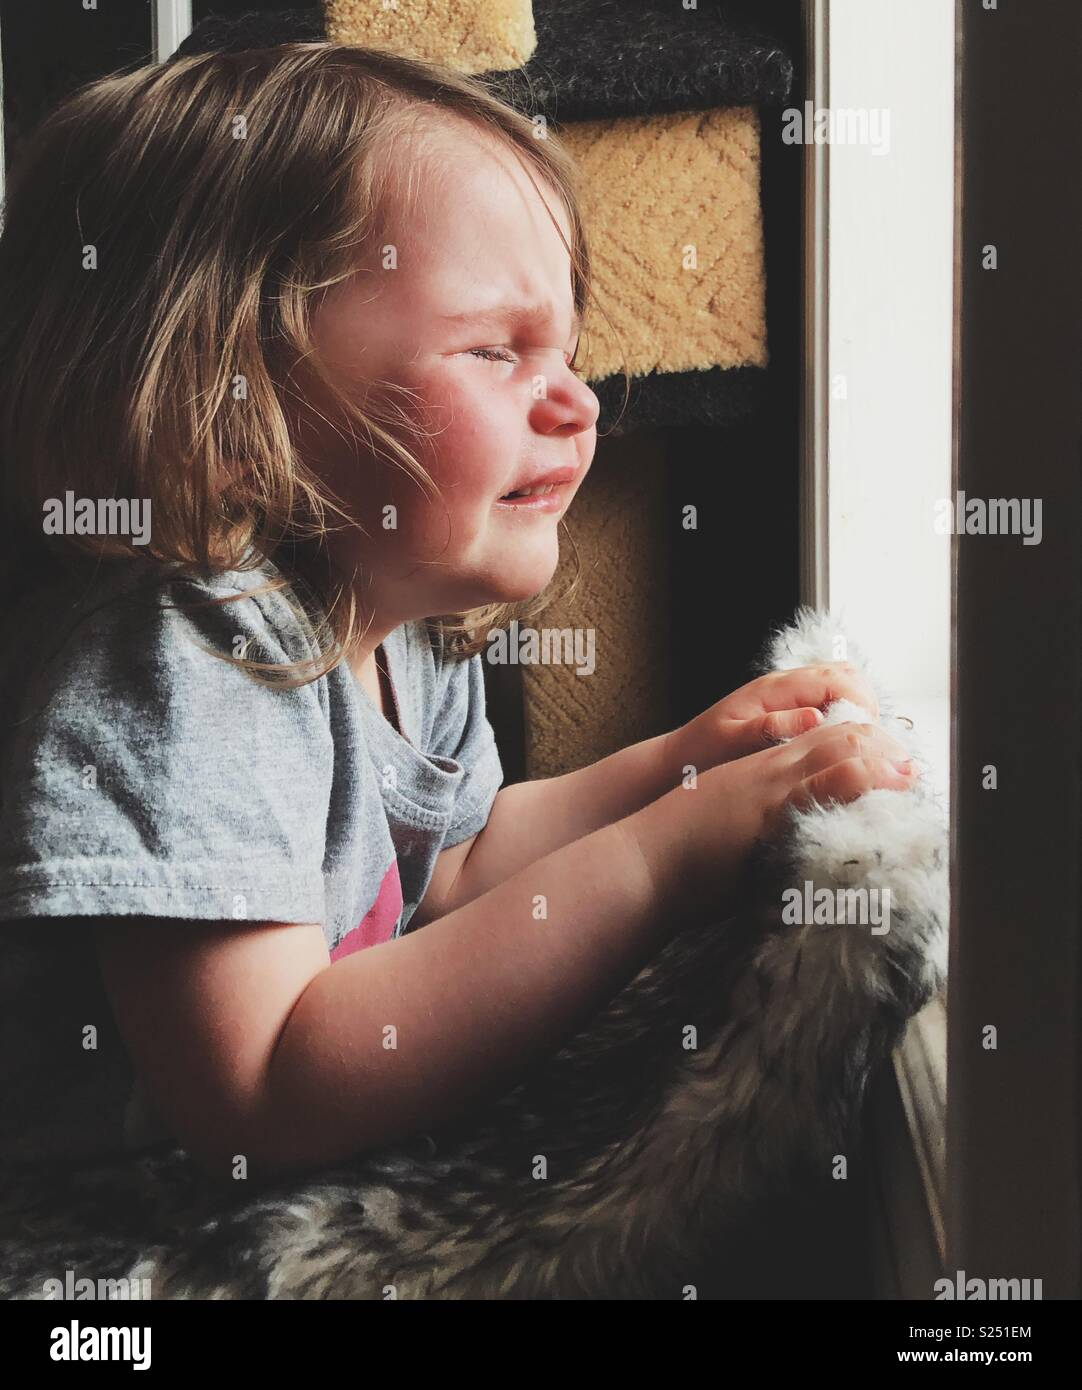 Toddler girl crying at window during a temper tantrum - Stock Image